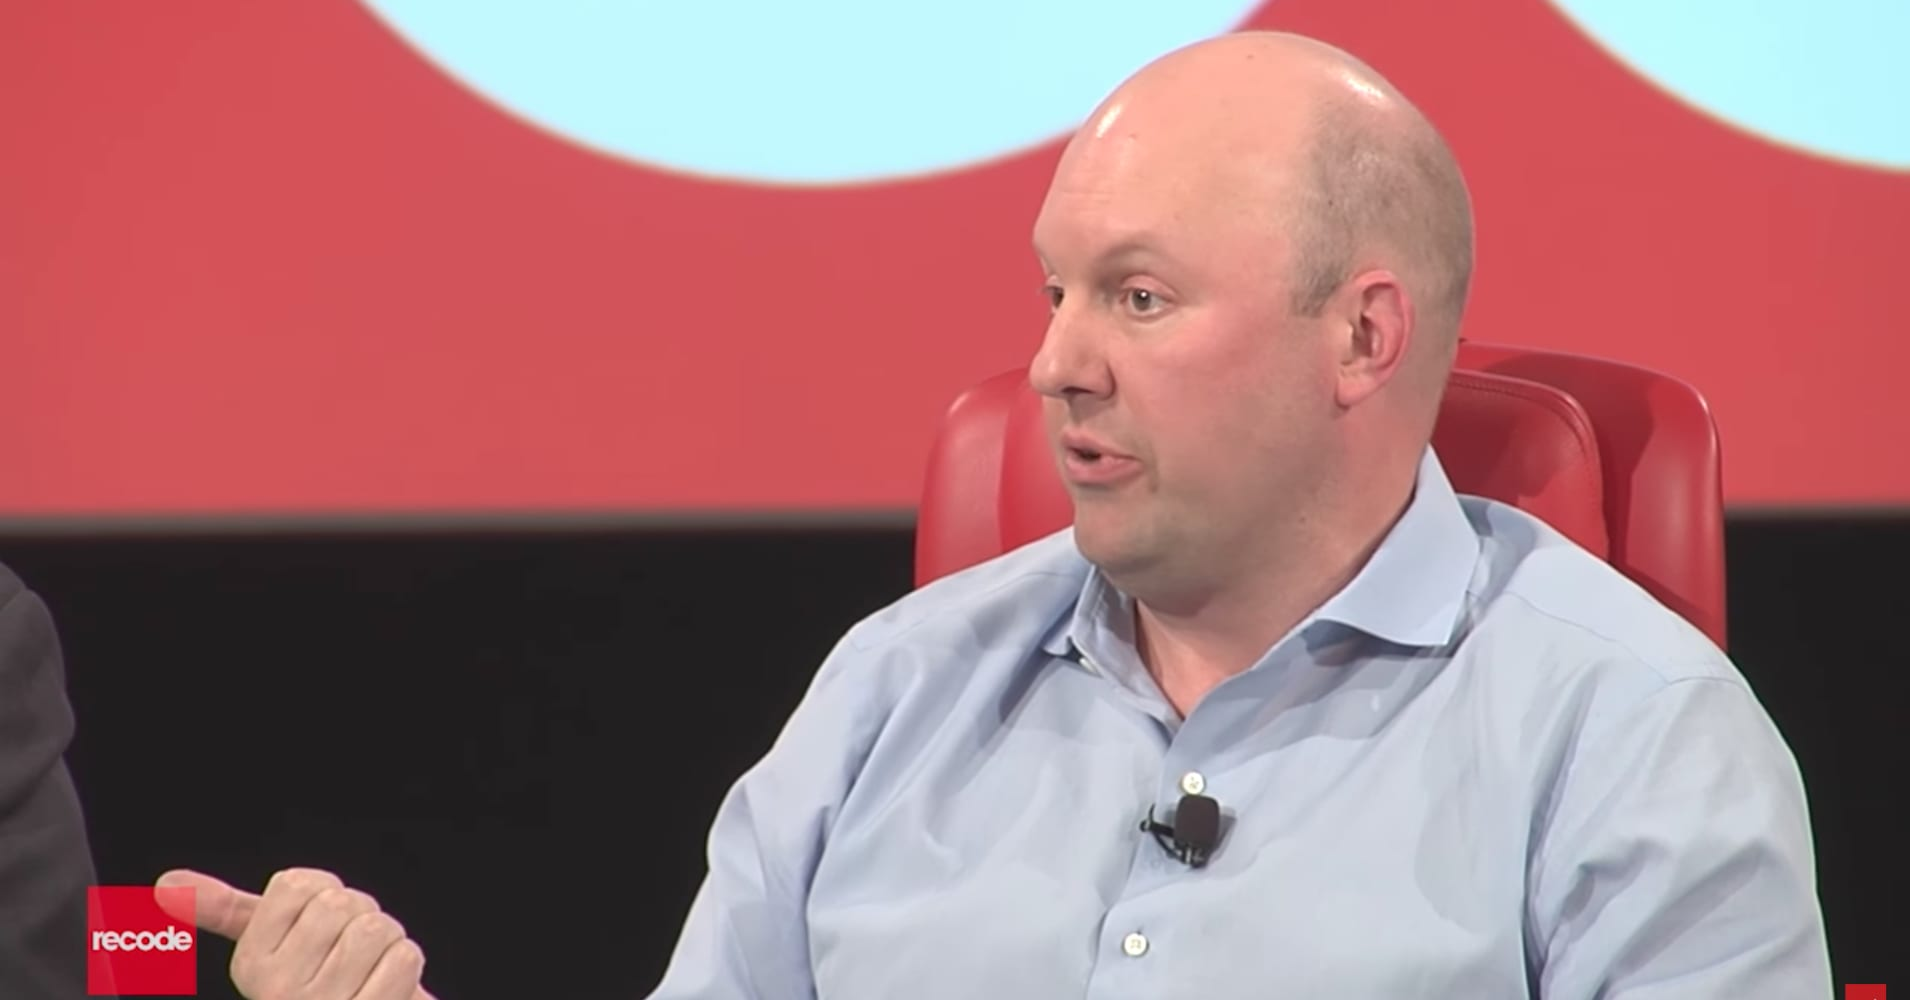 Marc Andreessen just gave loads of advice to start-up founders - CNBC